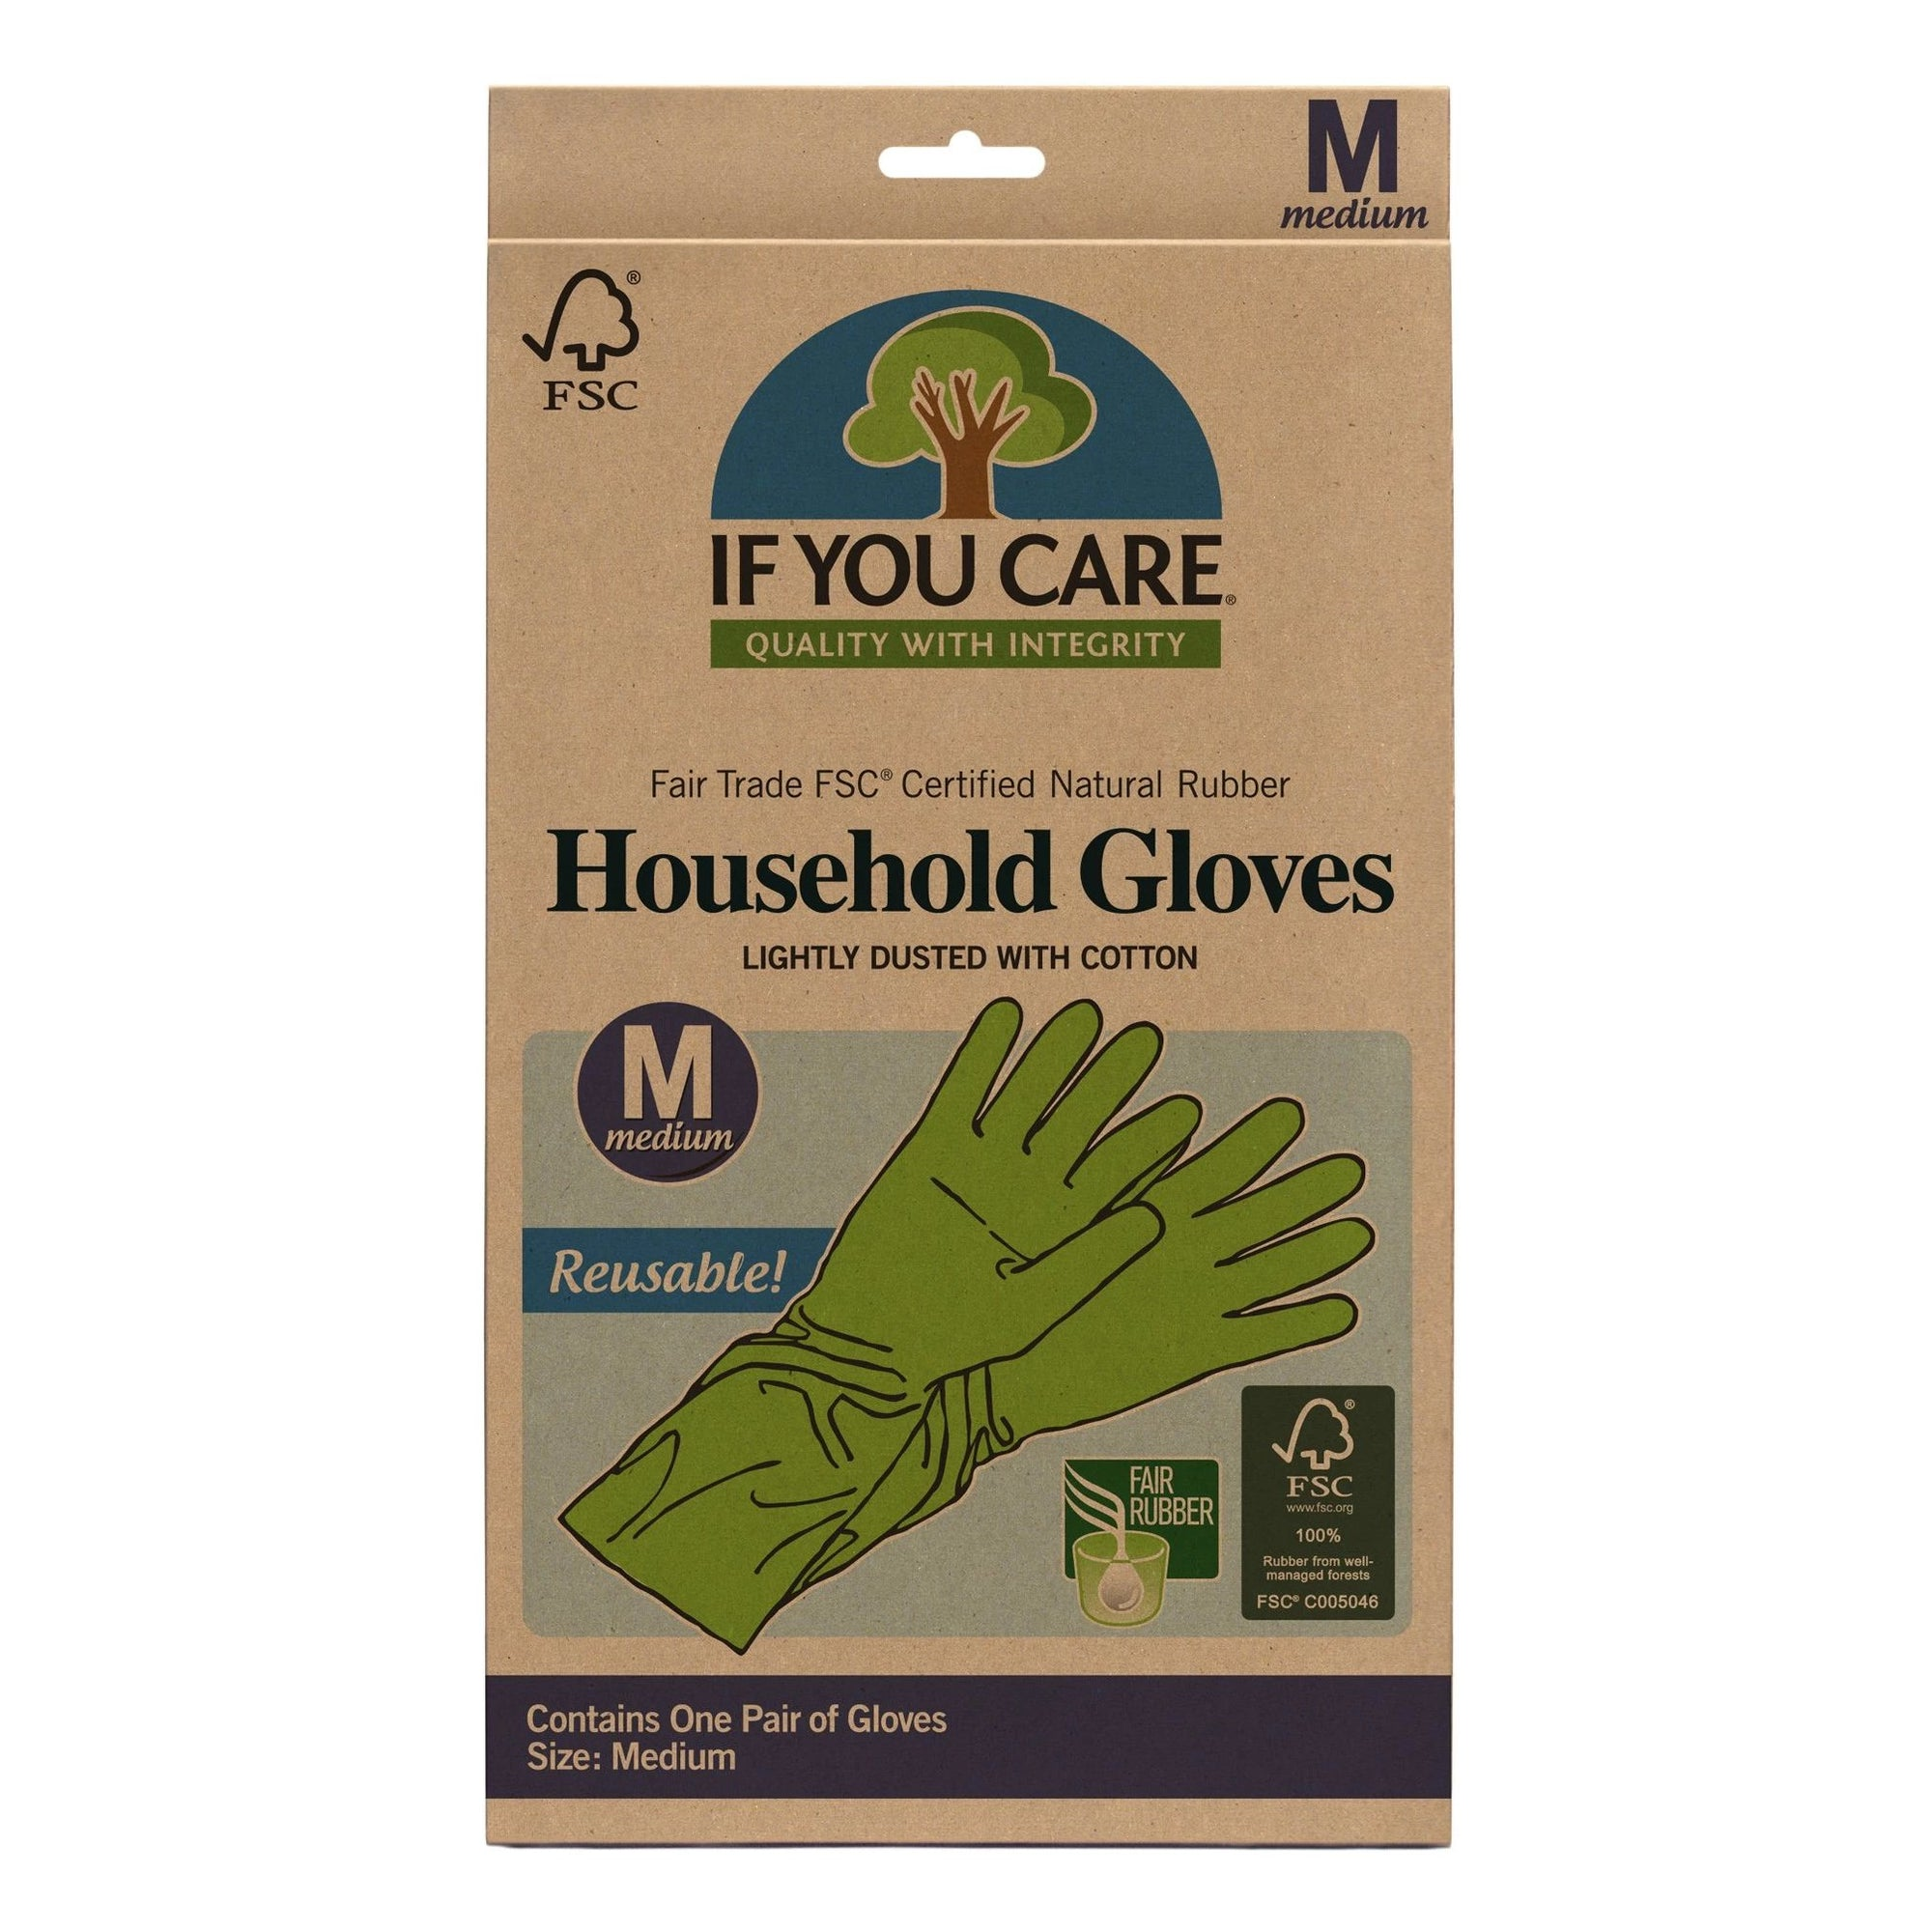 Fair Trade Natural Rubber Gloves